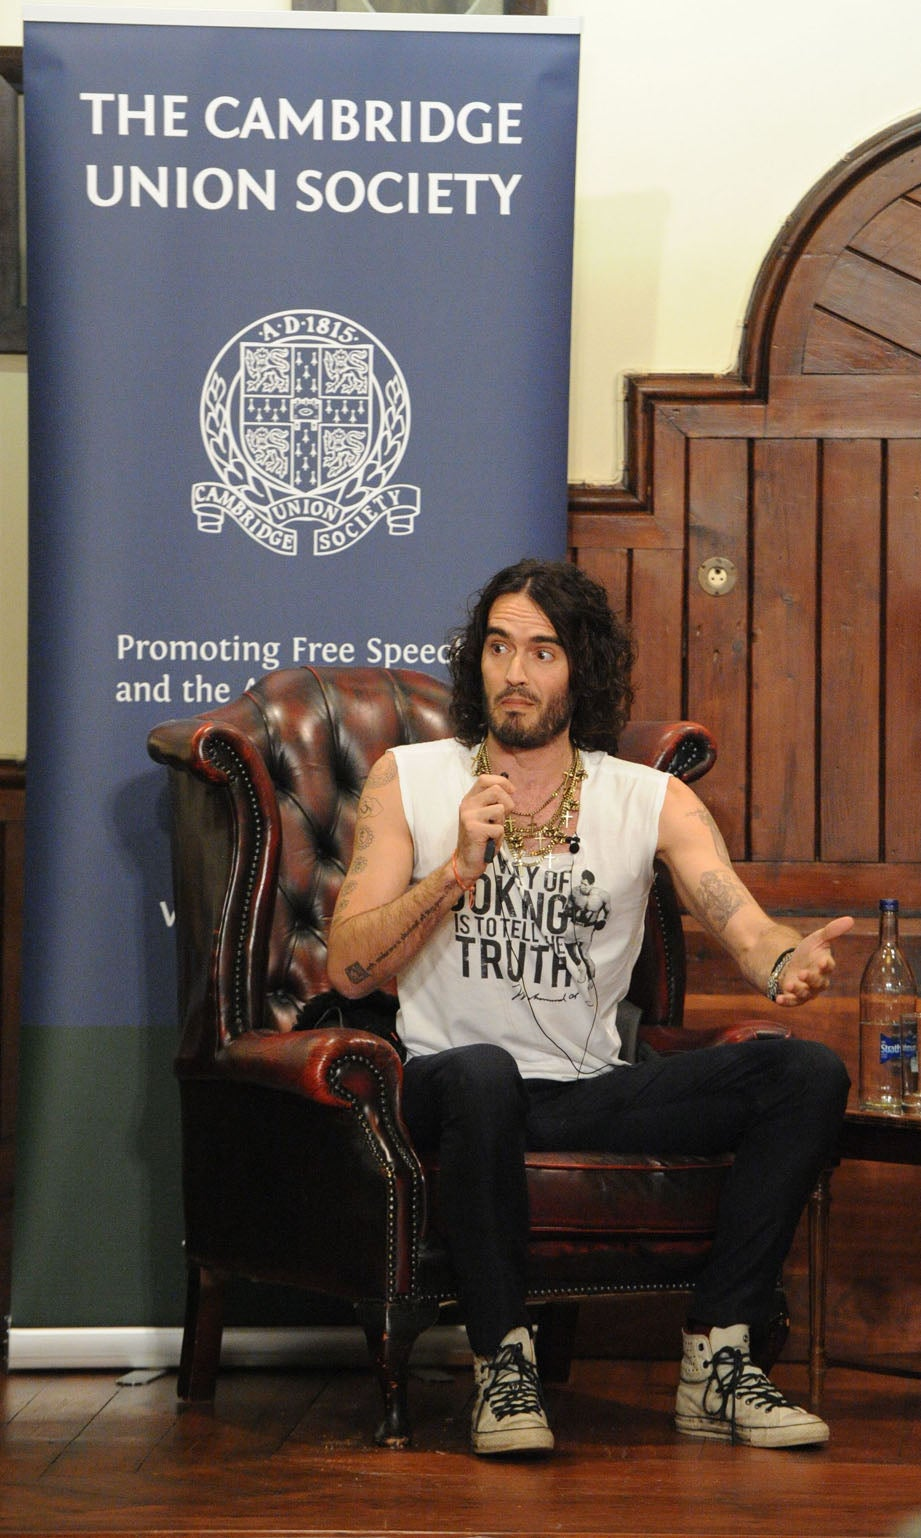 Russell Brand told what furniture in the intimate life means with Katy Perry 26.07.2012 39